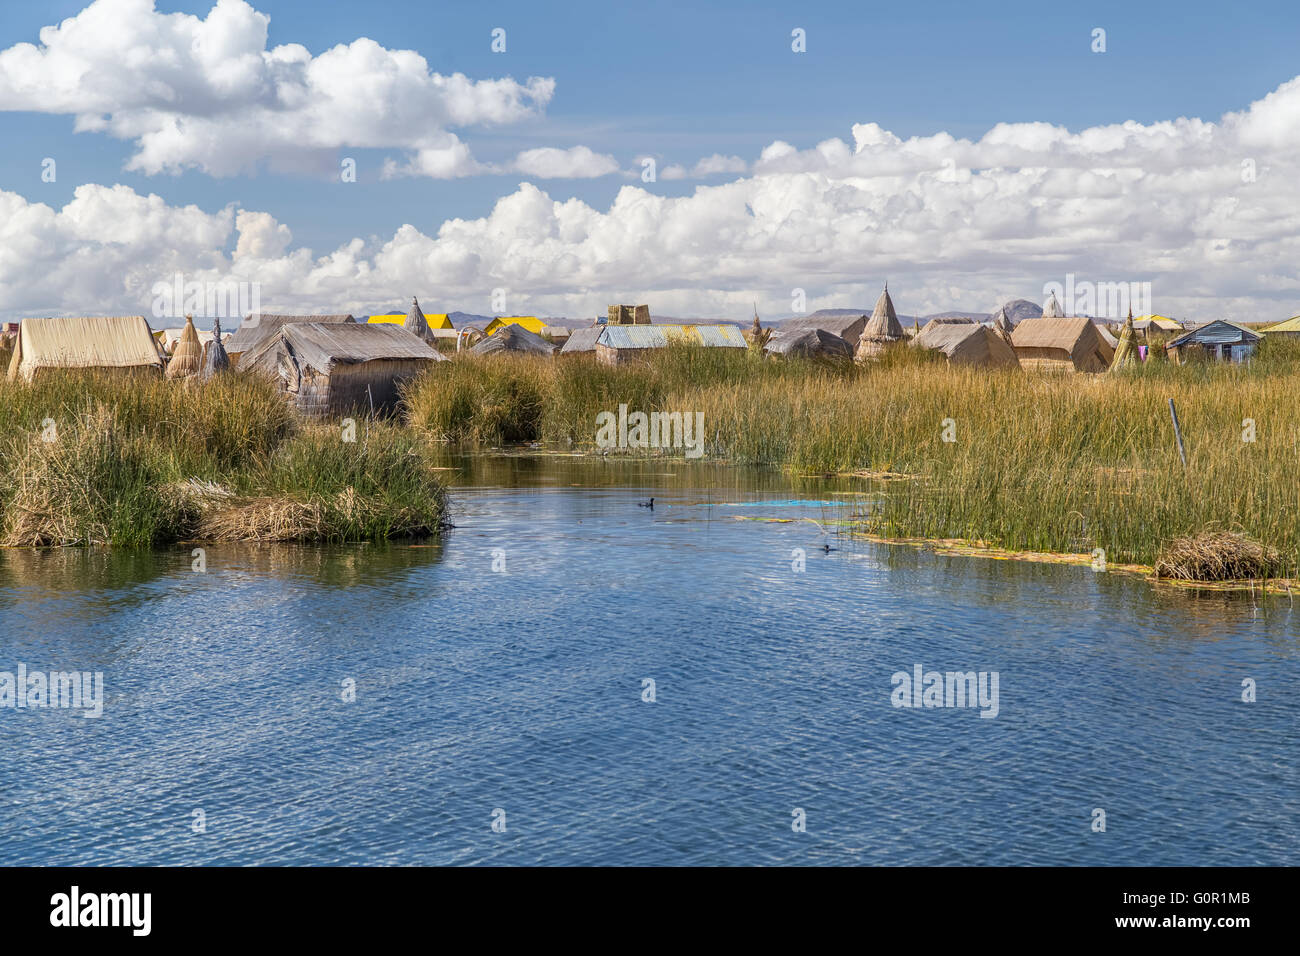 Uros floating island and village on Lake Titicaca near Puno, Peru - Stock Image